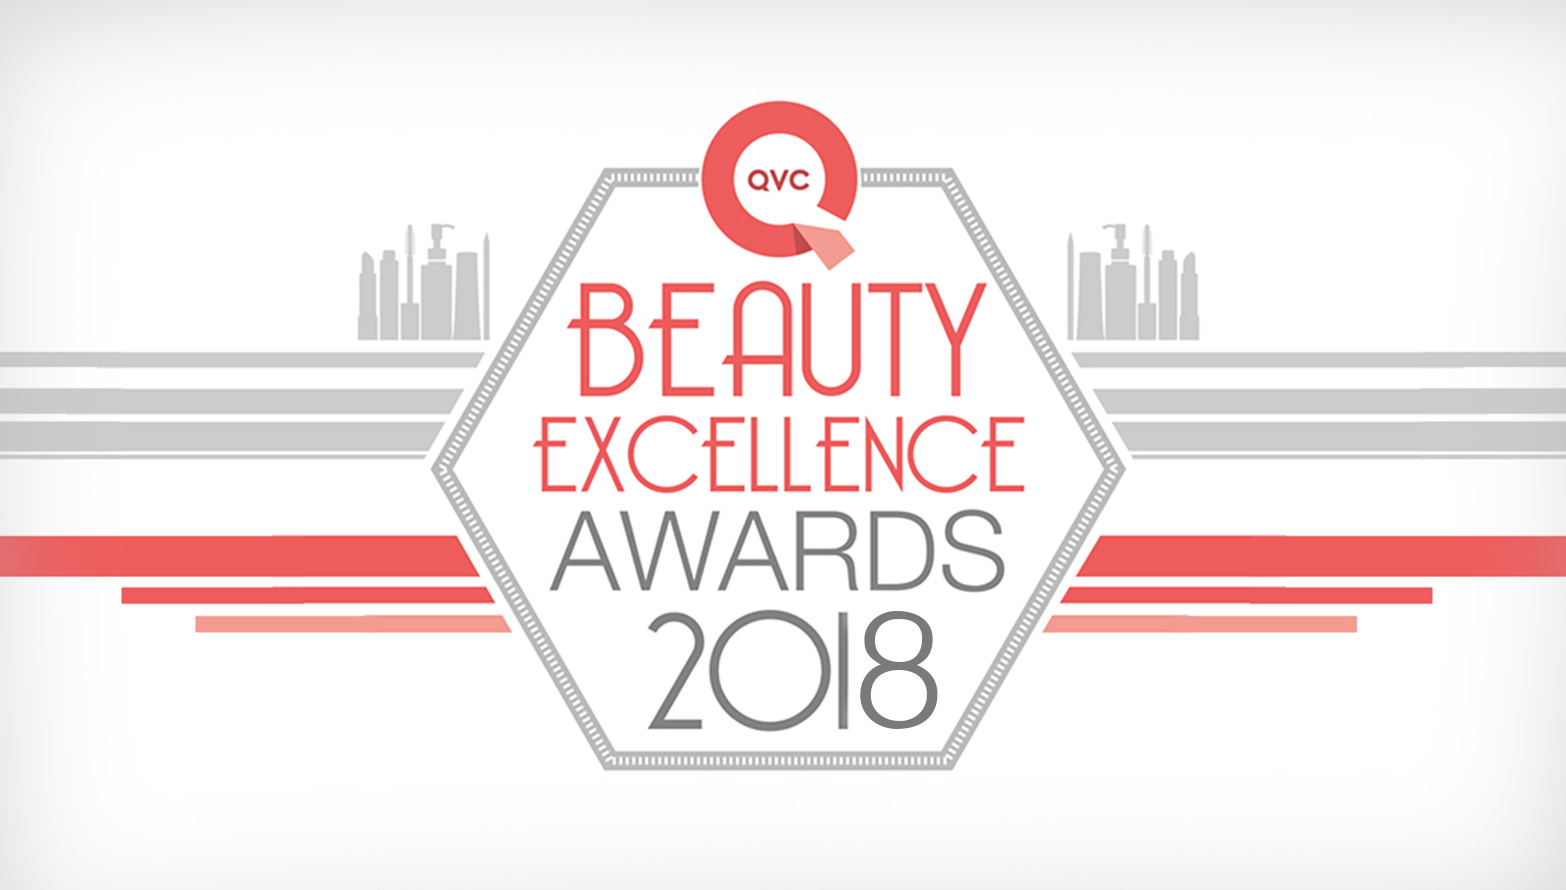 The Beauty Excellence Awards 2018